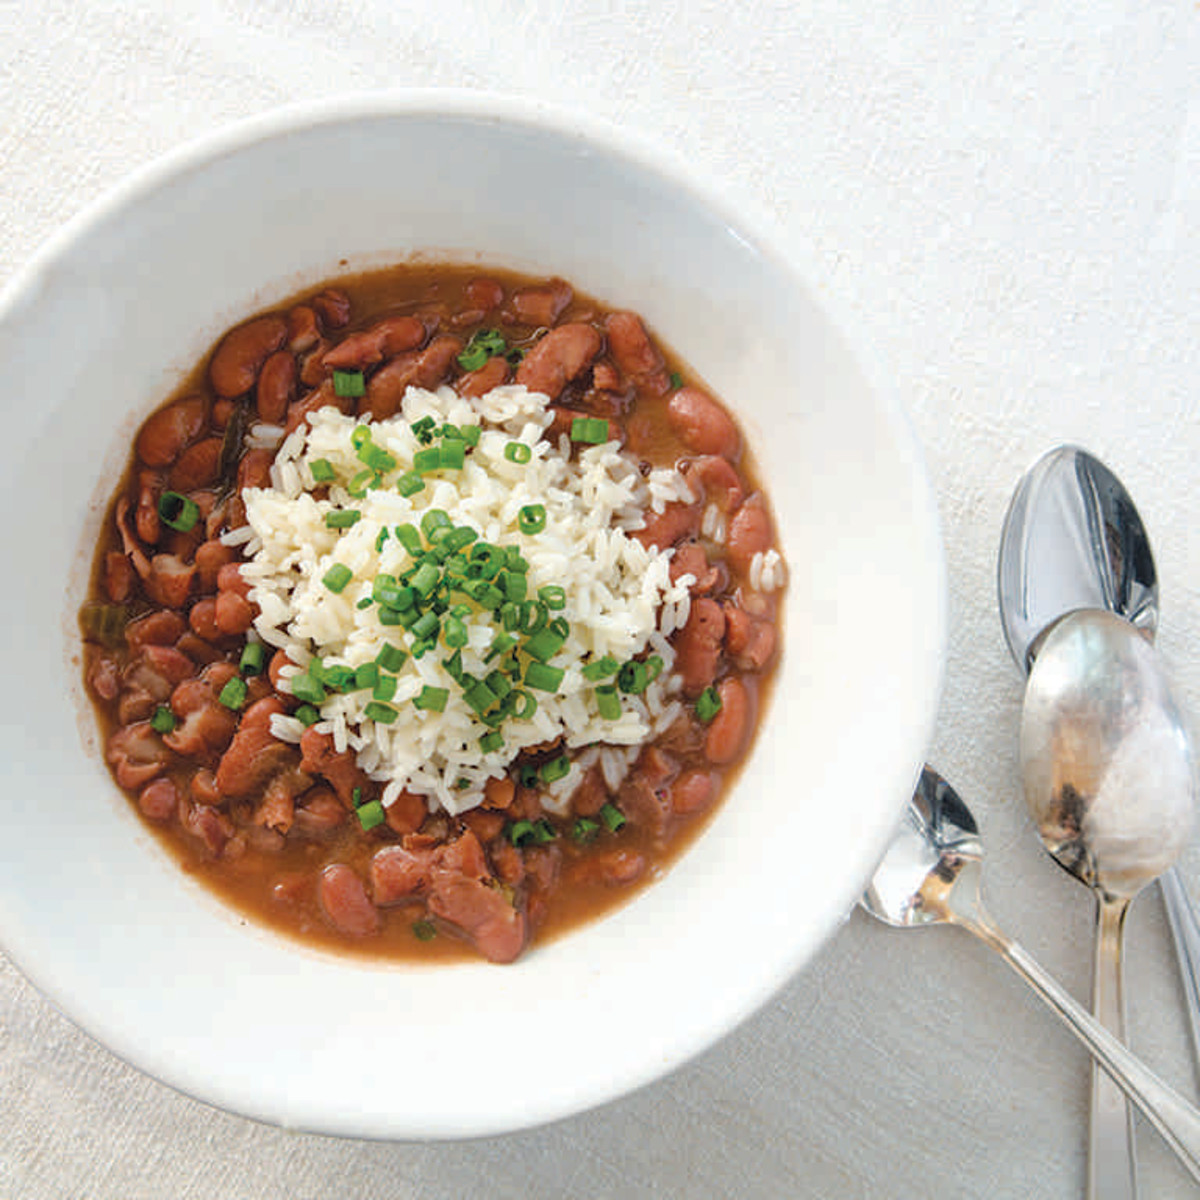 John Besh Big Easy red beans and rice